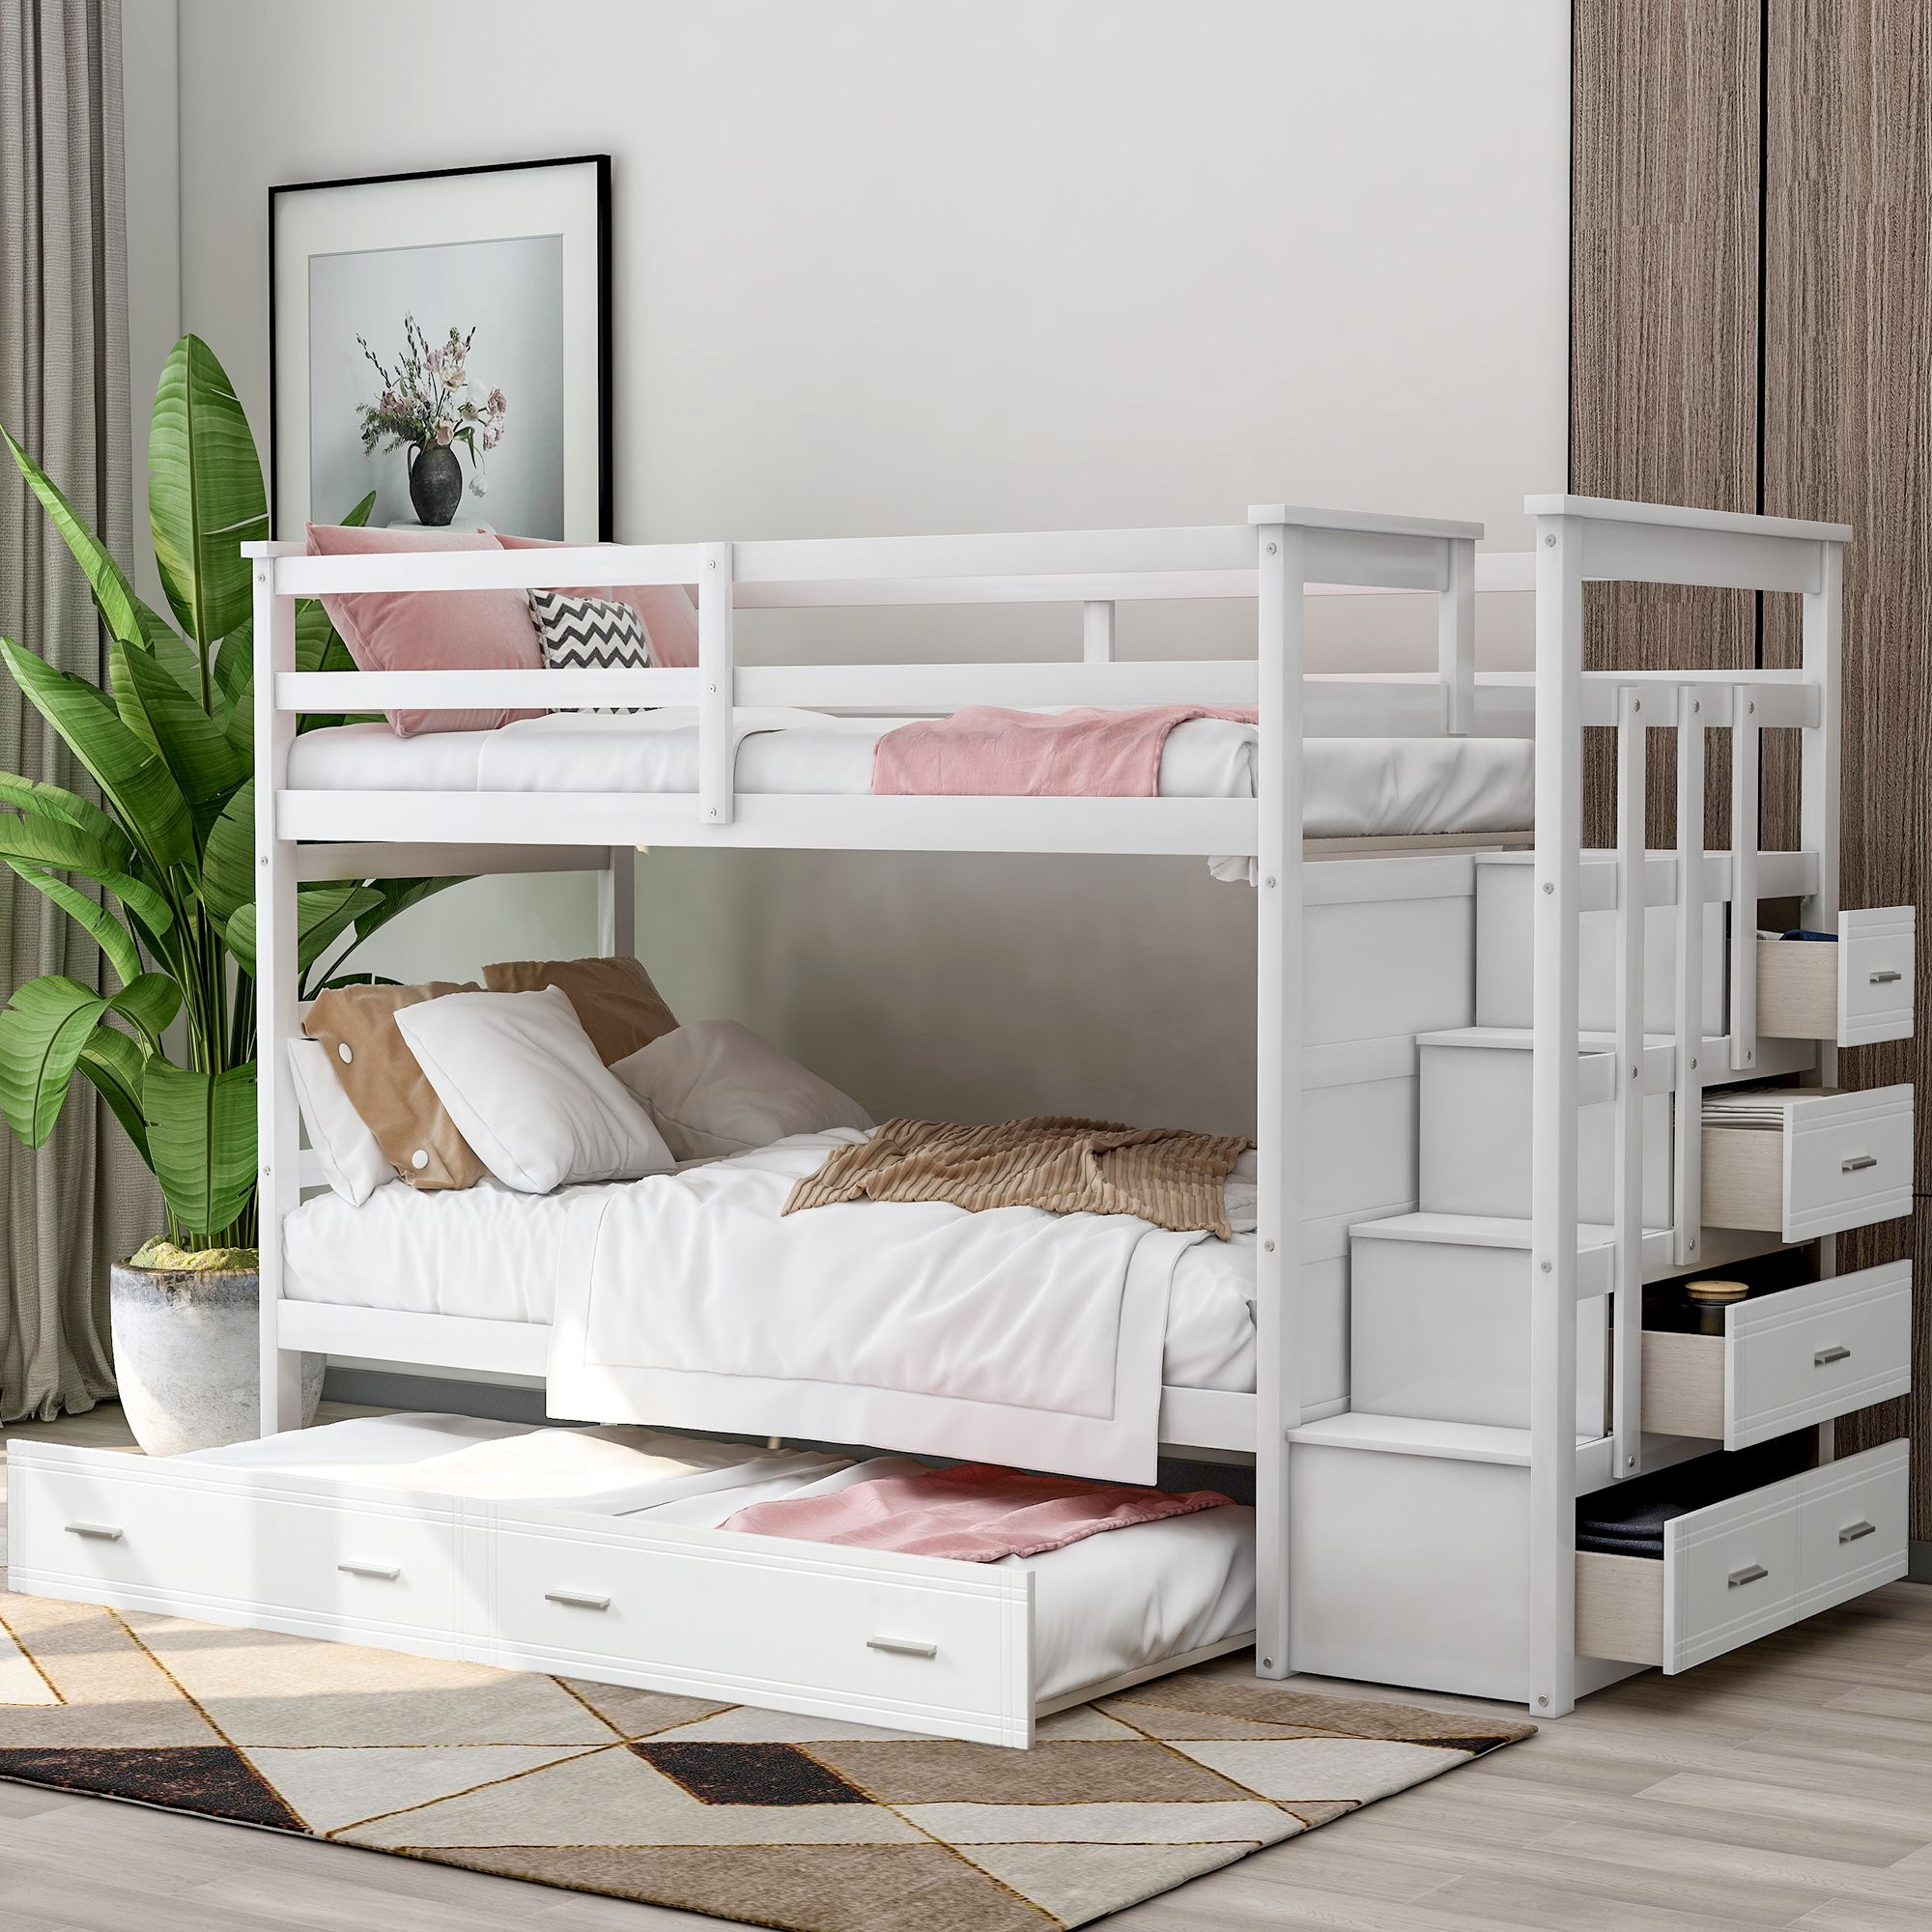 Euroco Twin Over Twin Bunk Bed With Trundle Storage Drawers White Walmart Com Twin Bunk Beds Bunk Bed With Trundle Bunk Beds Twin bunk beds with drawers